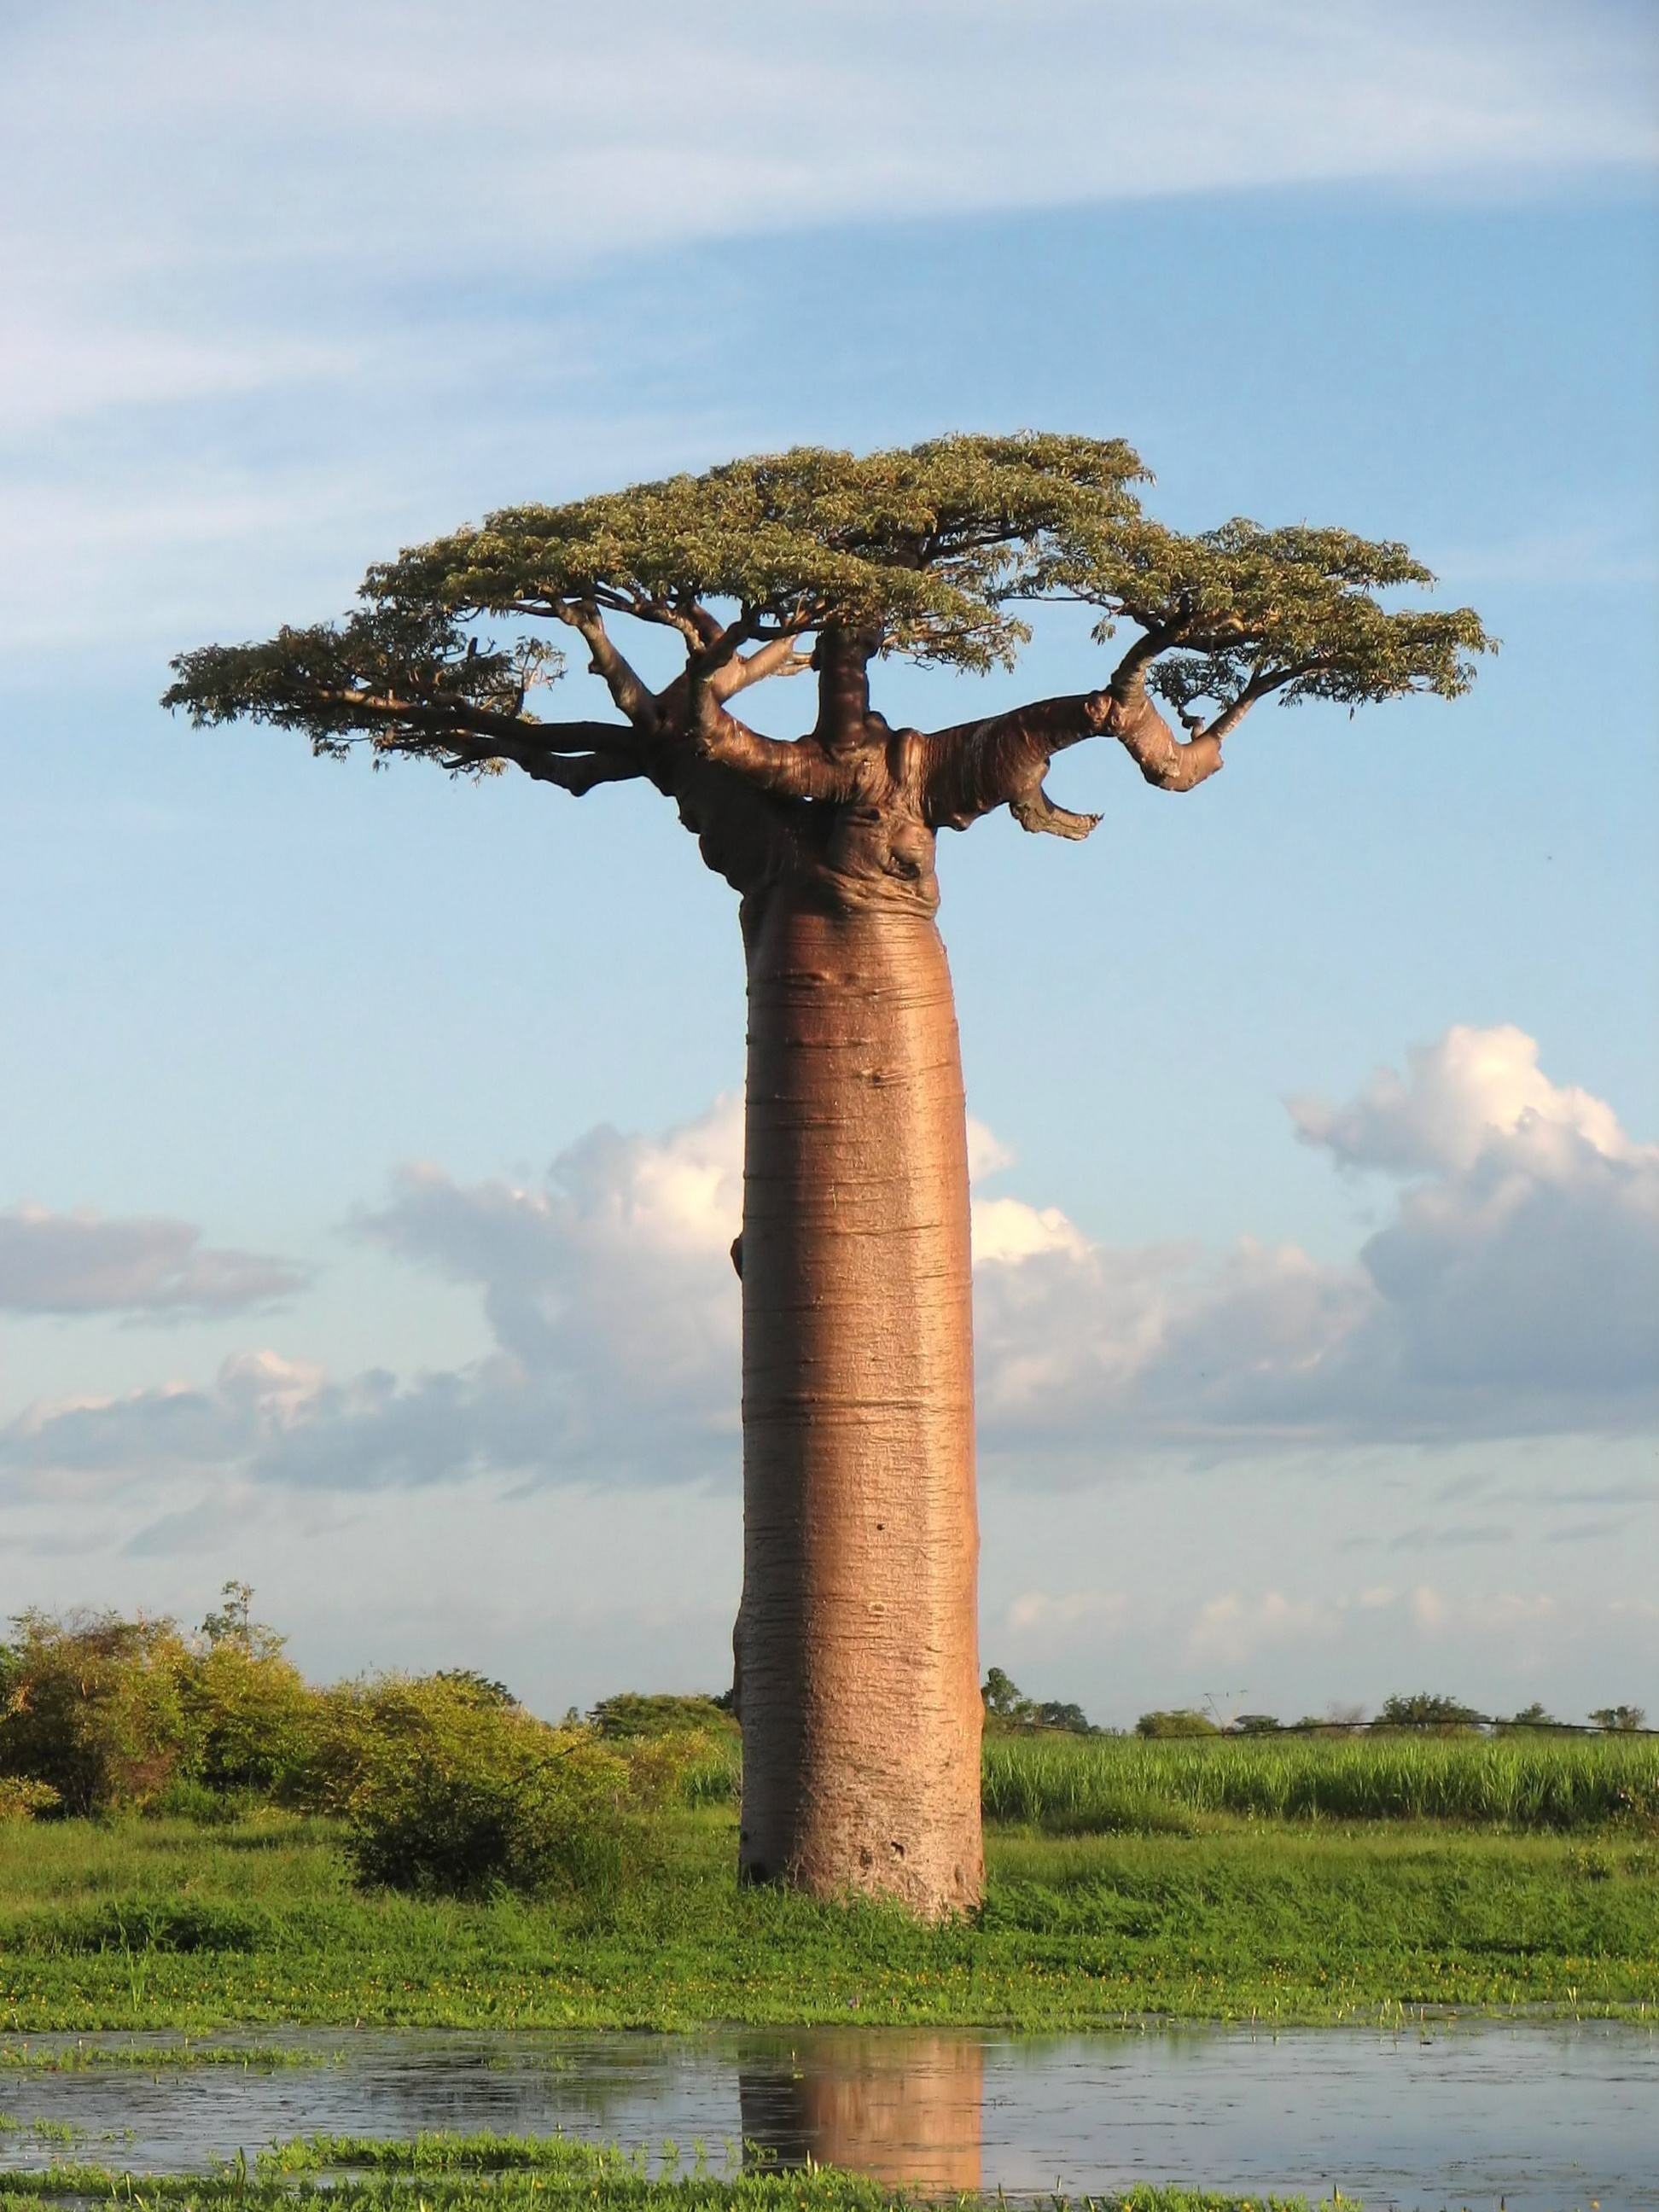 Get a torso and legs as strong as a Baobab tree by adding squats and squatting to your exercise regime